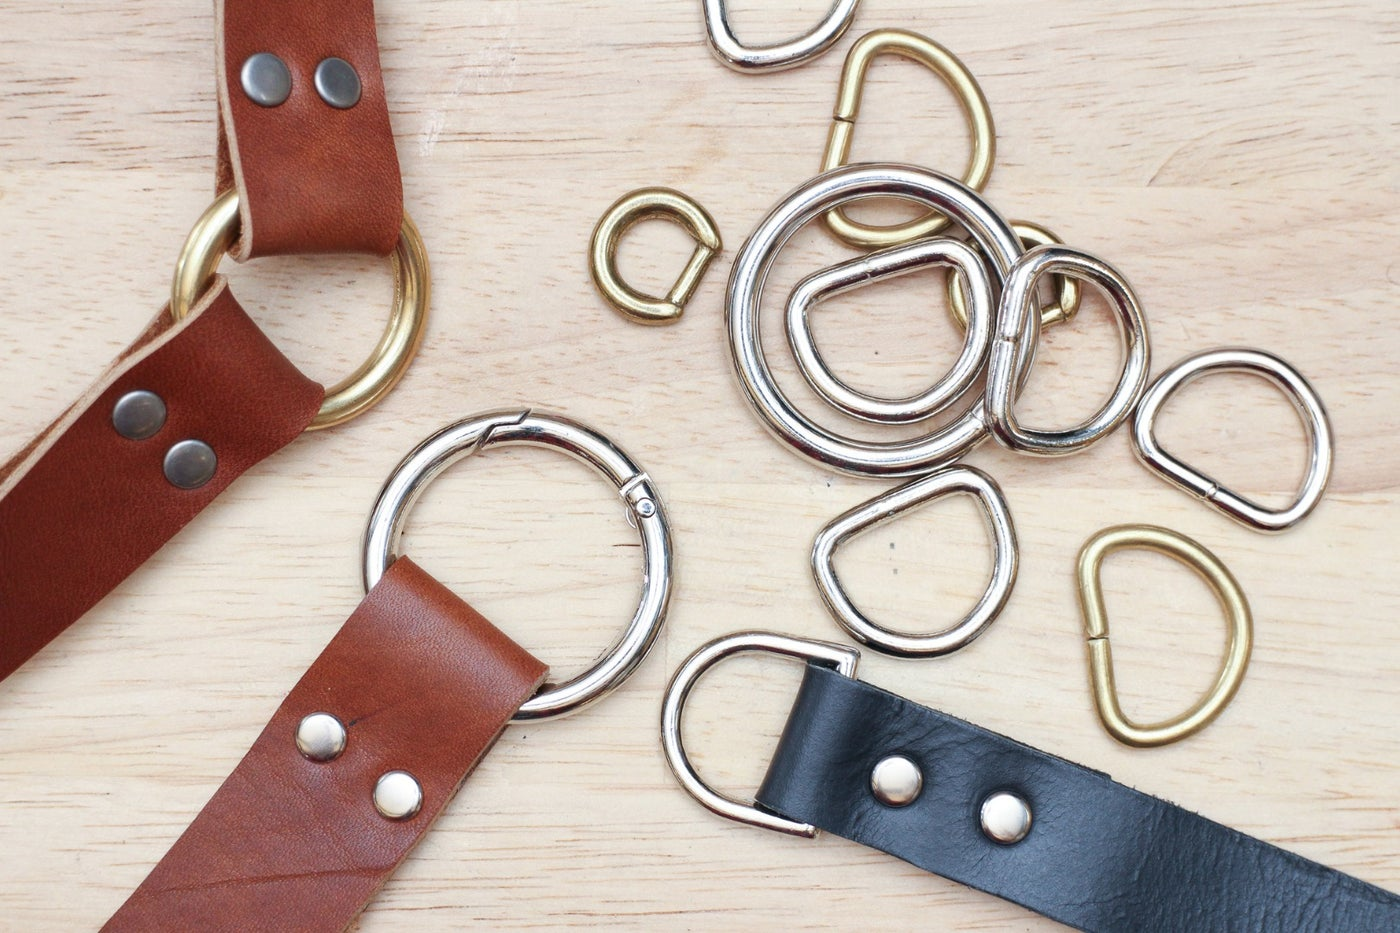 Leather Hardware: Rings